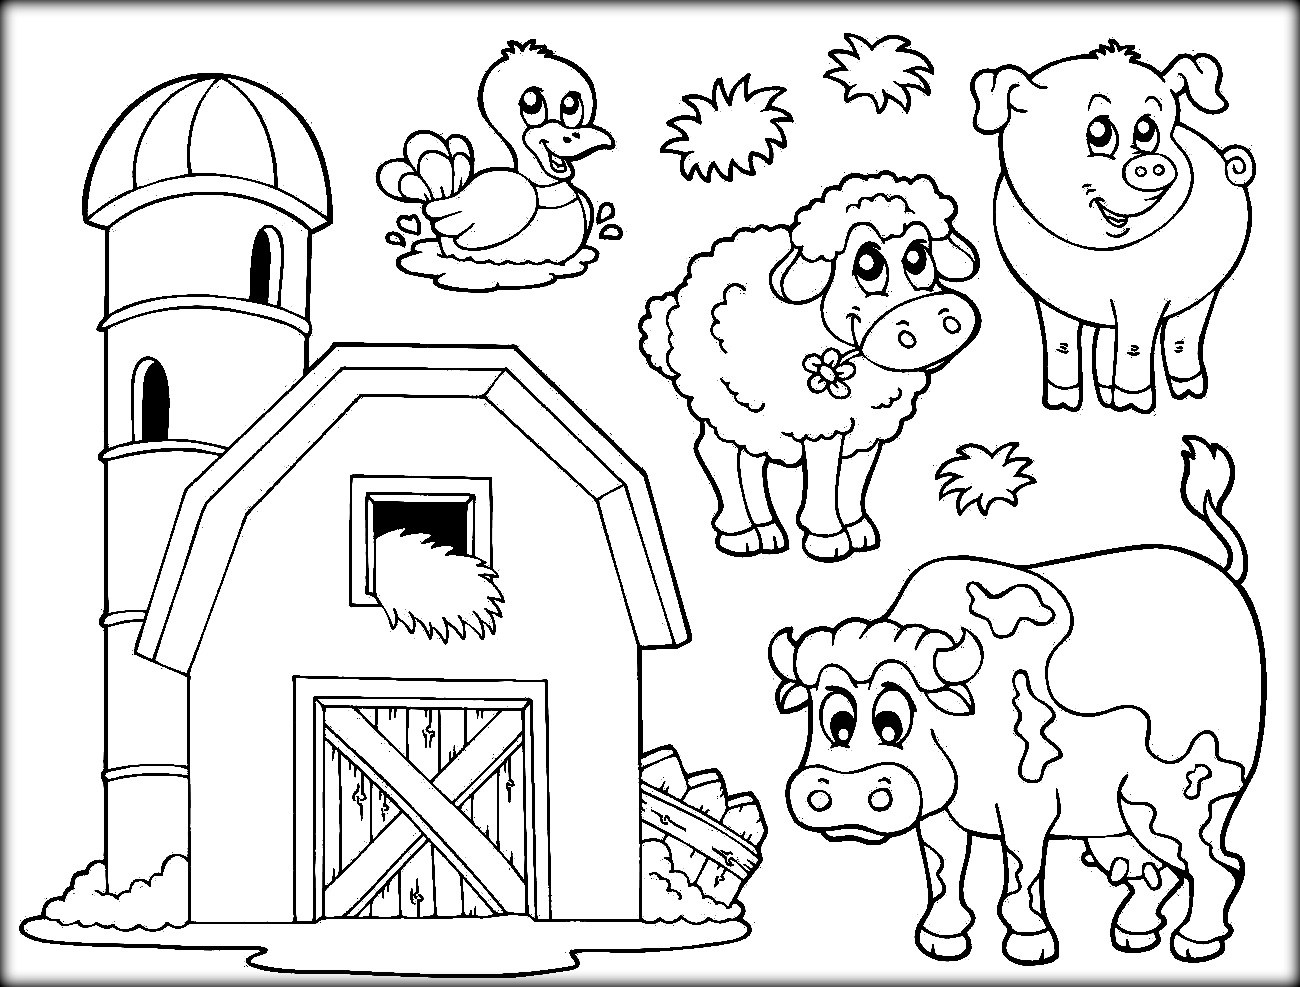 - Coloring Pages : Farm Animal Coloring Book Images Printable Pages